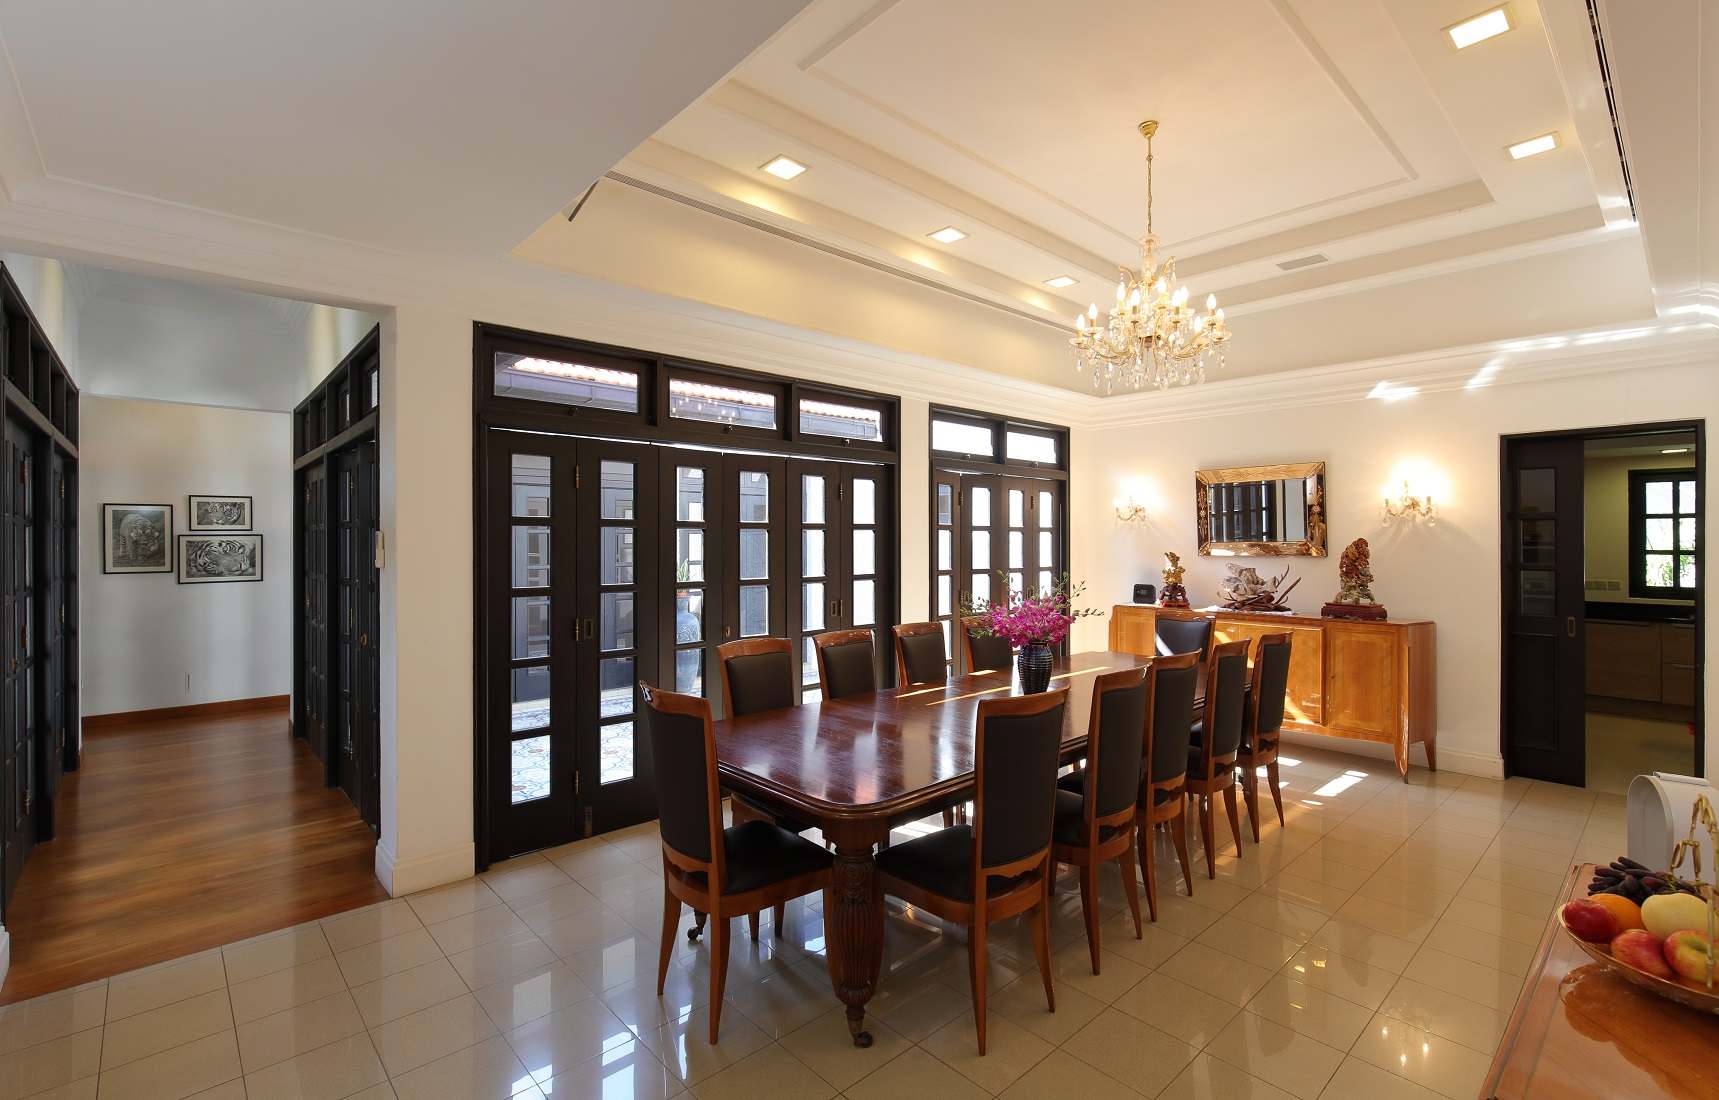 The dining room with French doors leading out to the tiled courtyard (Photo: Samuel Isaac Chua/EdgeProp Singapore) - EDGEPROP SINGAPORE